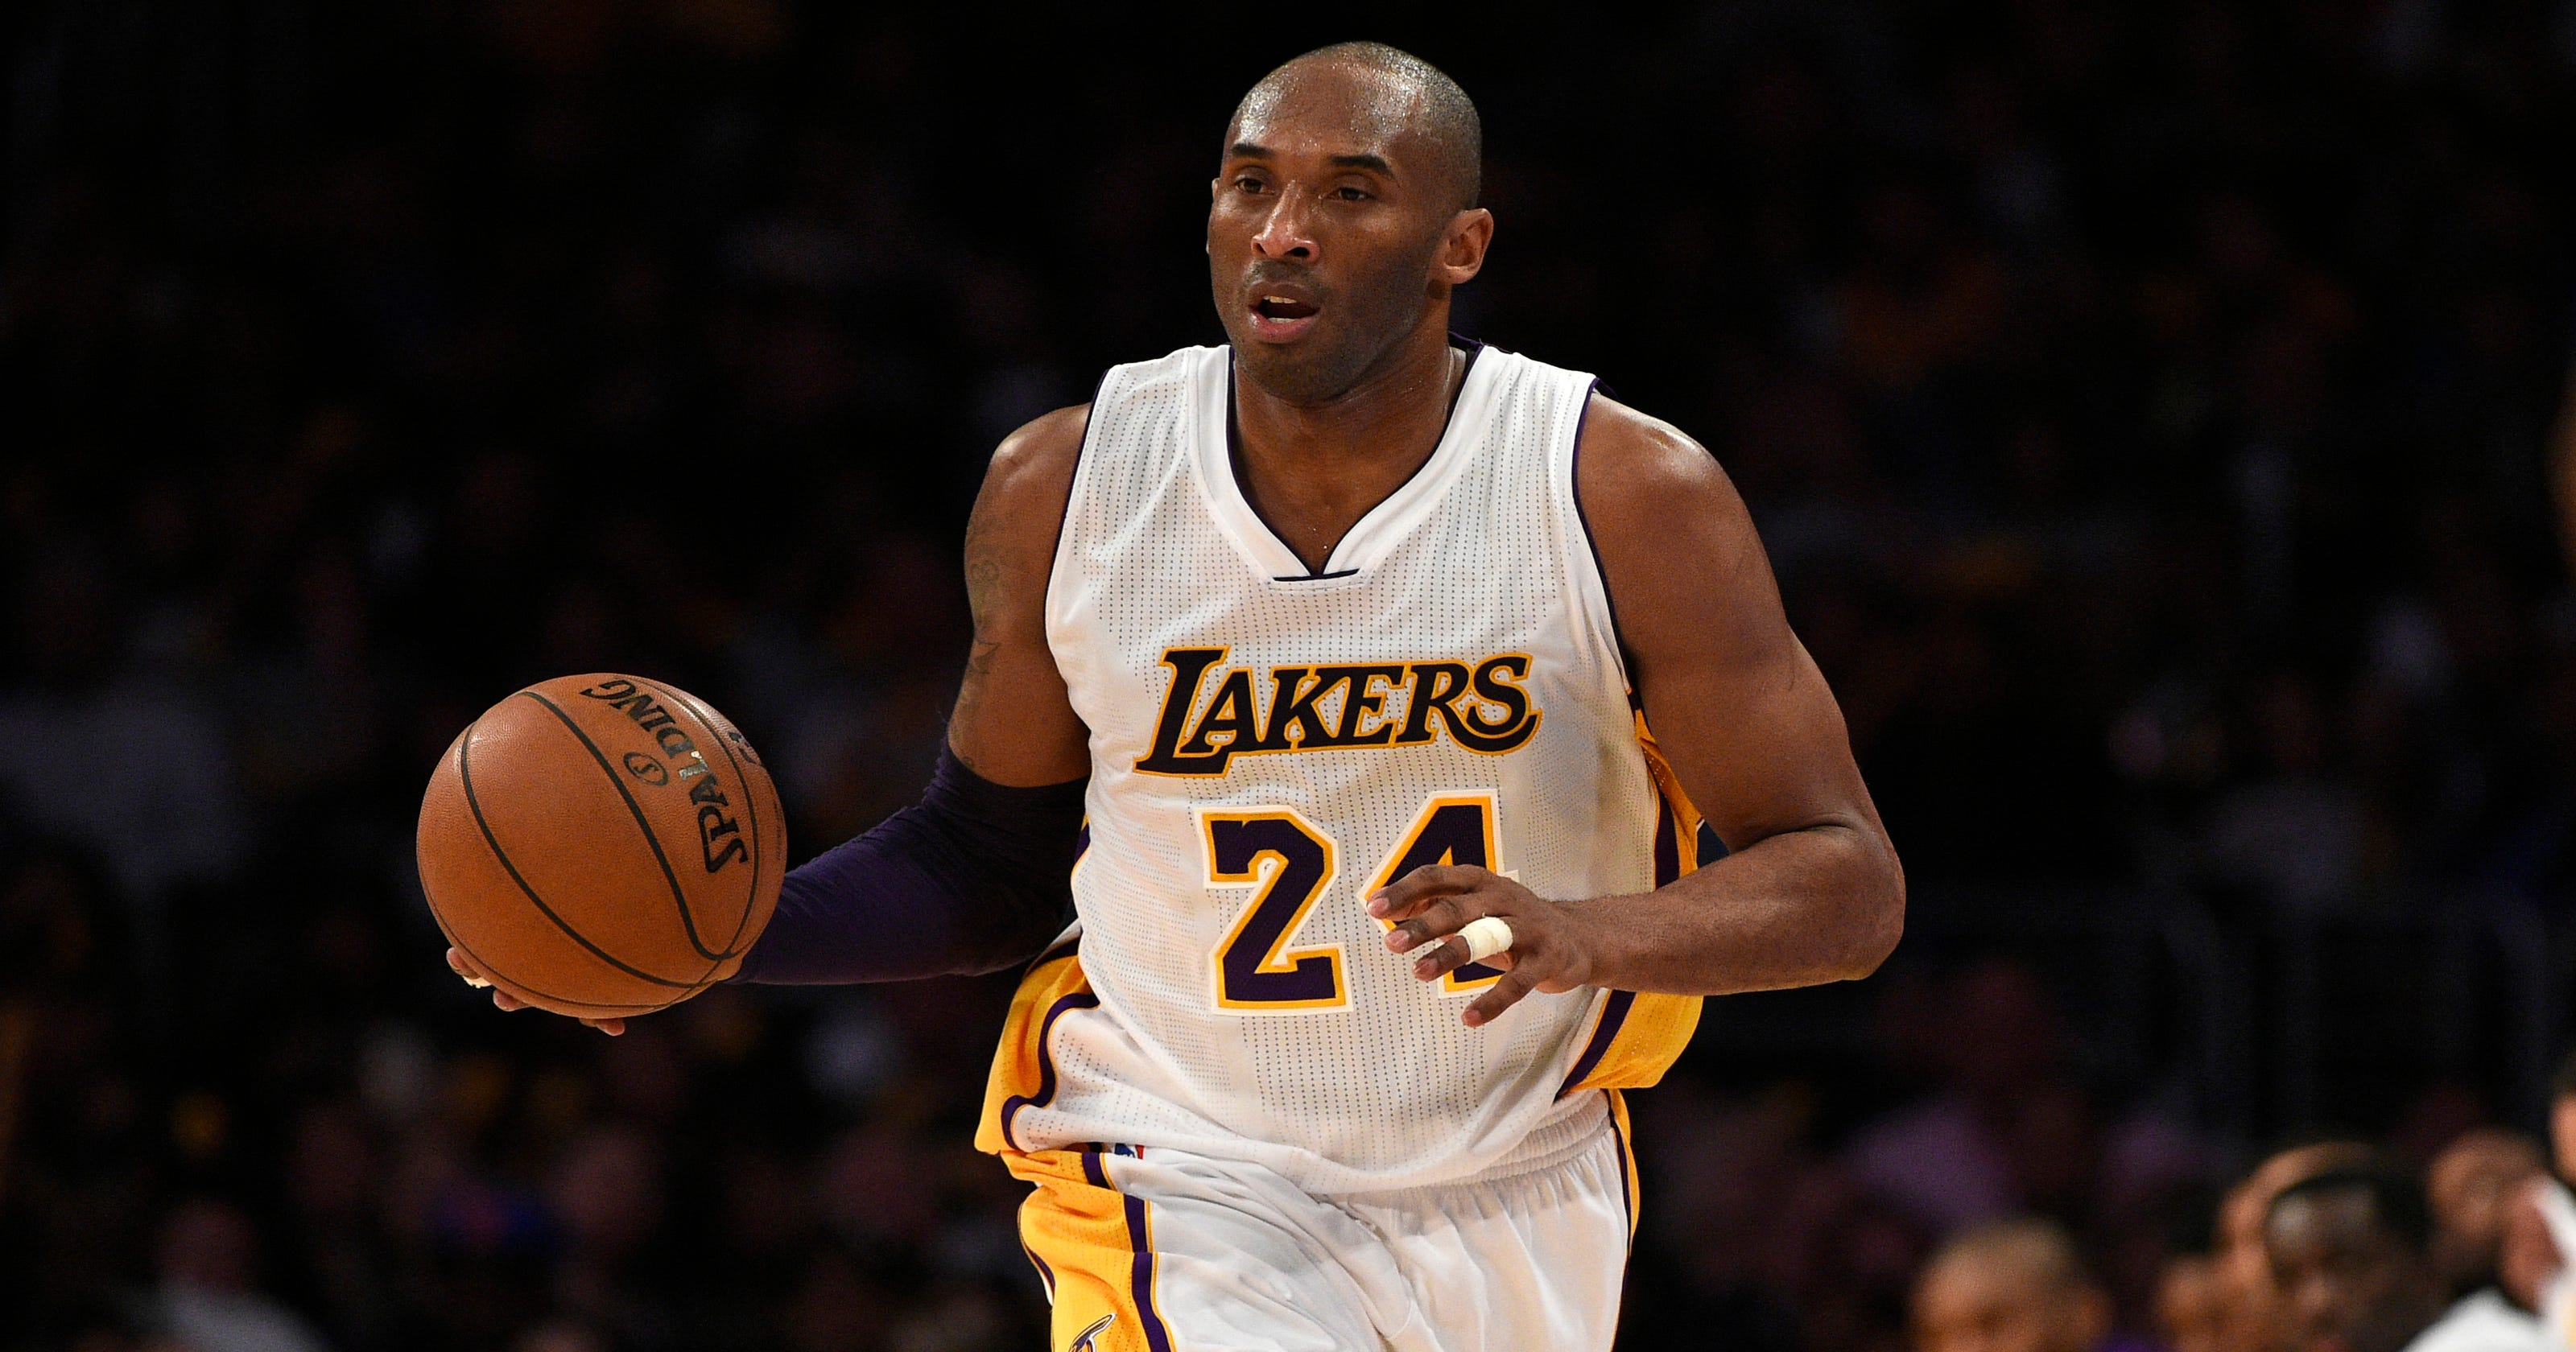 huge selection of 4e0dd 319ba Lakers  Kobe Bryant to sit Friday vs. Suns, report says